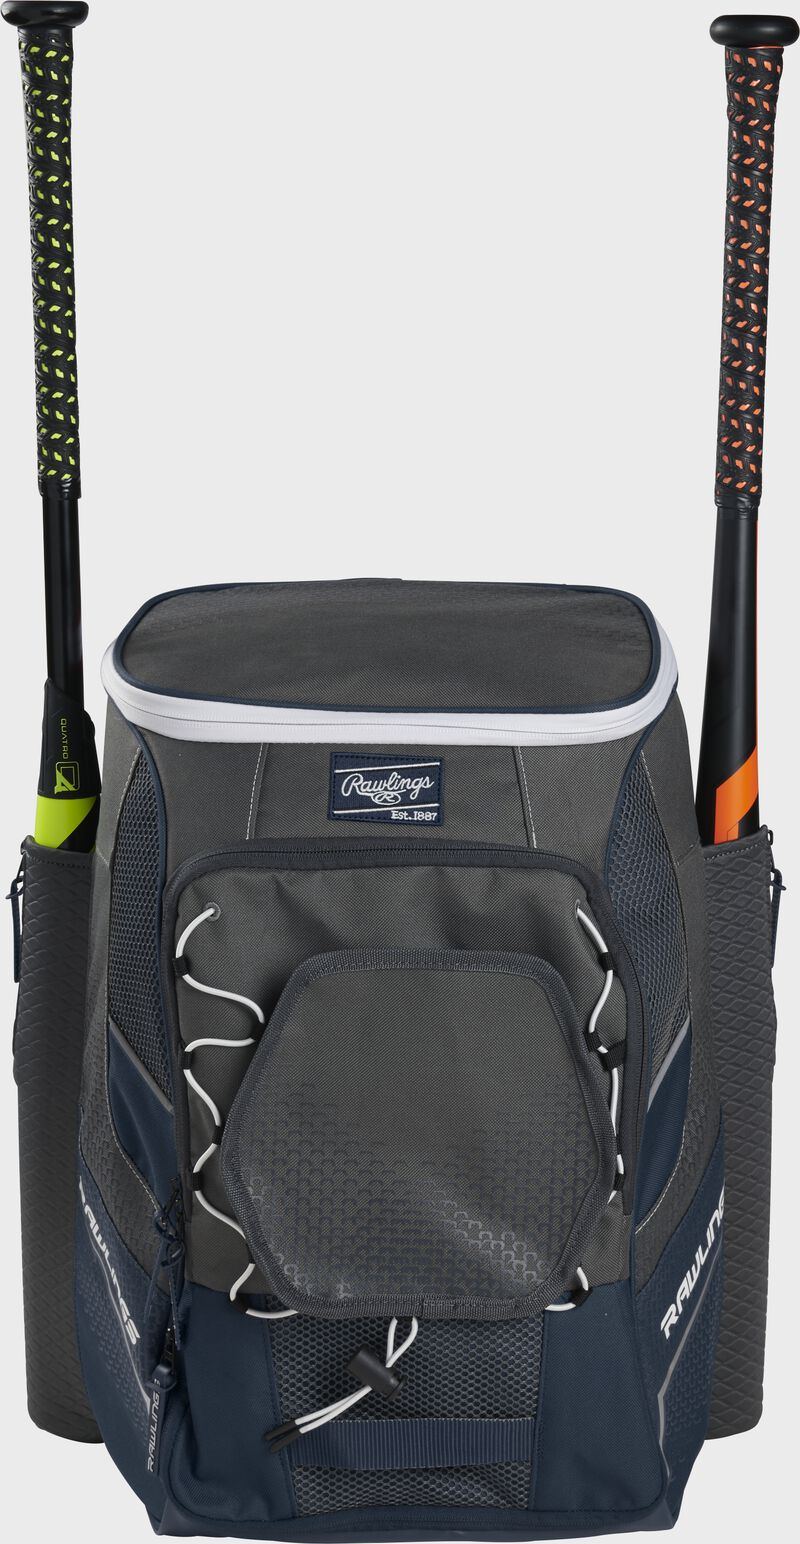 Front of a navy Rawlings Impulse bag with a navy Rawlings patch and two bats in the sides - SKU: IMPLSE-N